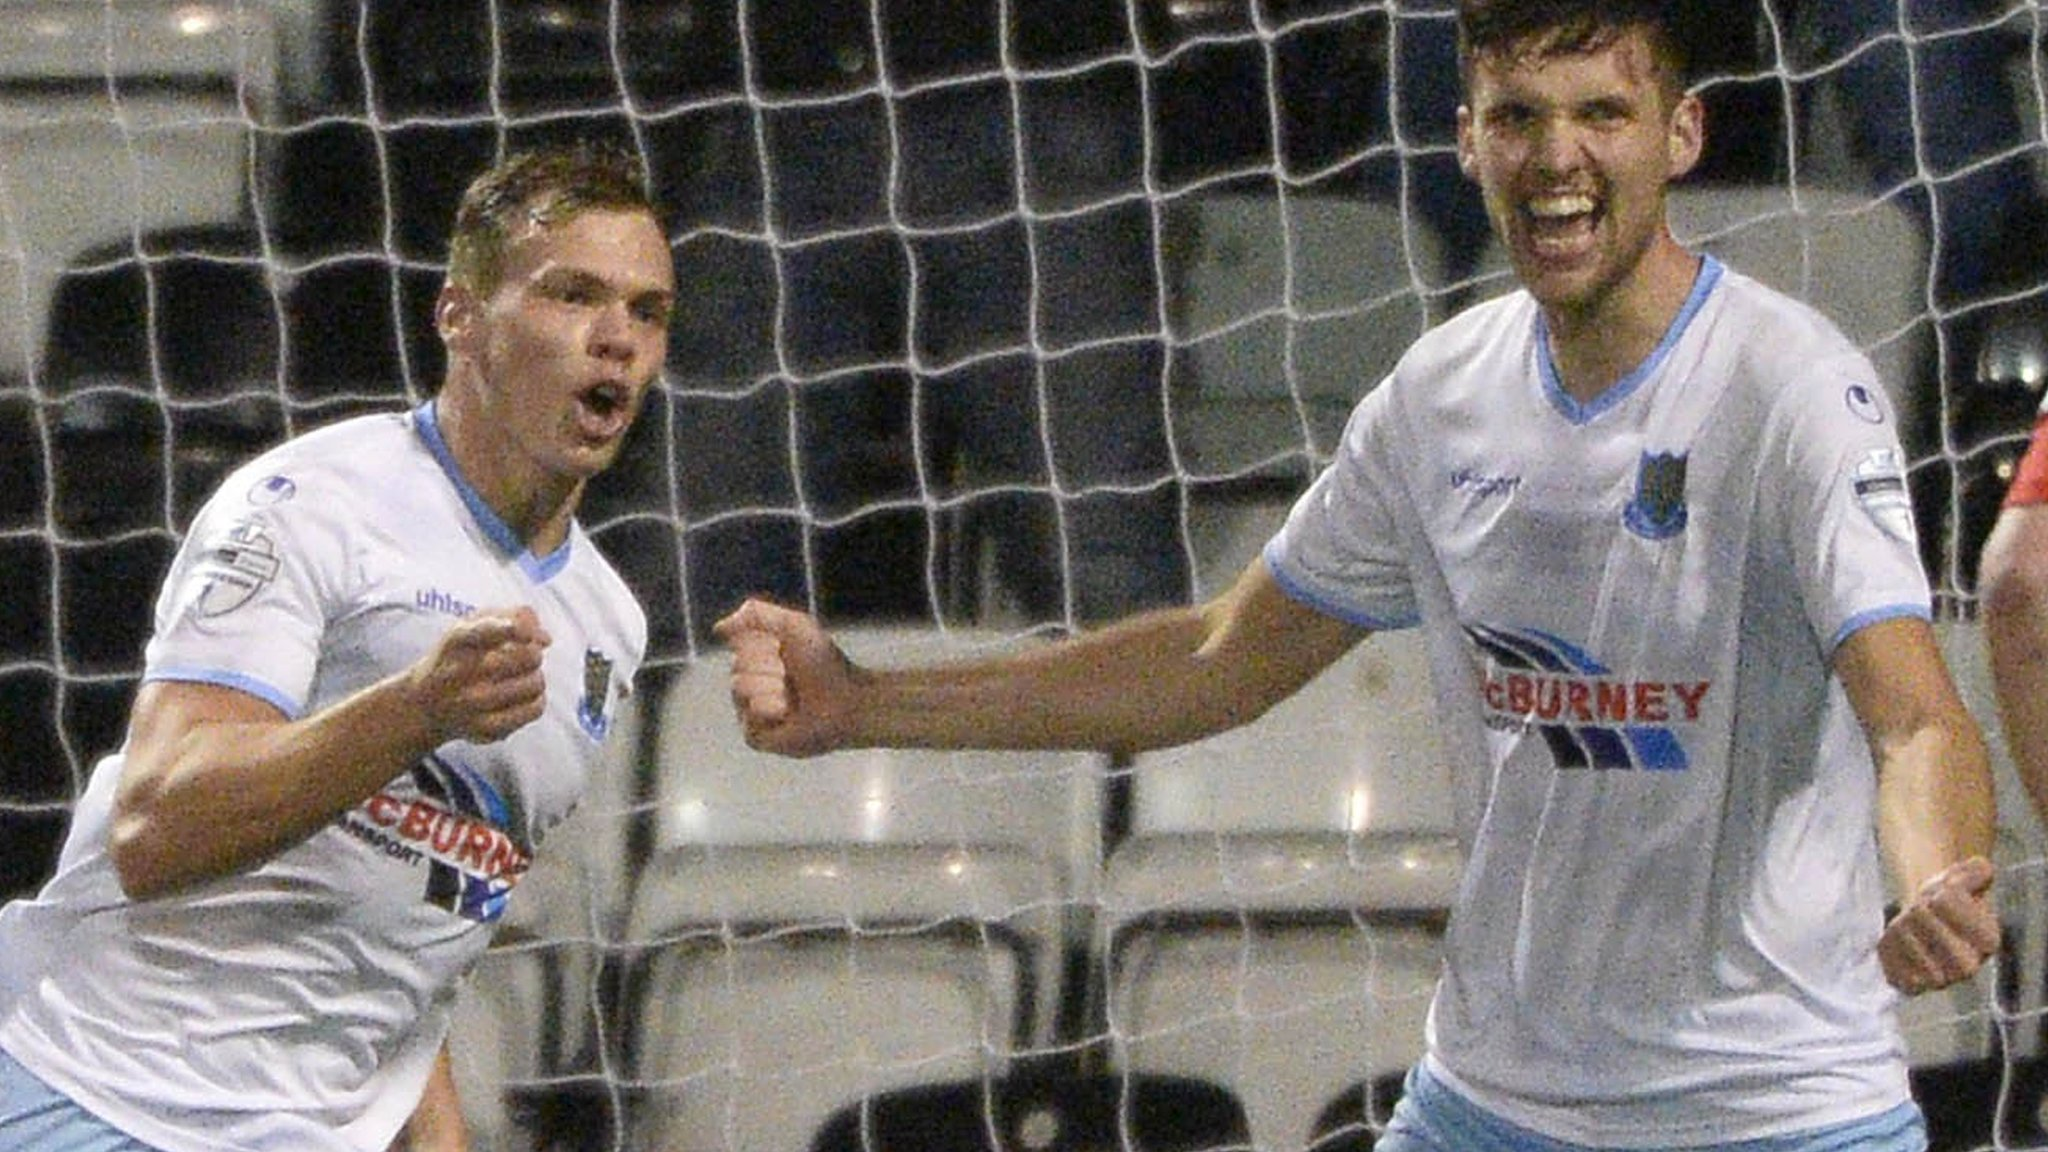 NI League Cup: Ballymena United and Linfield win semi-finals